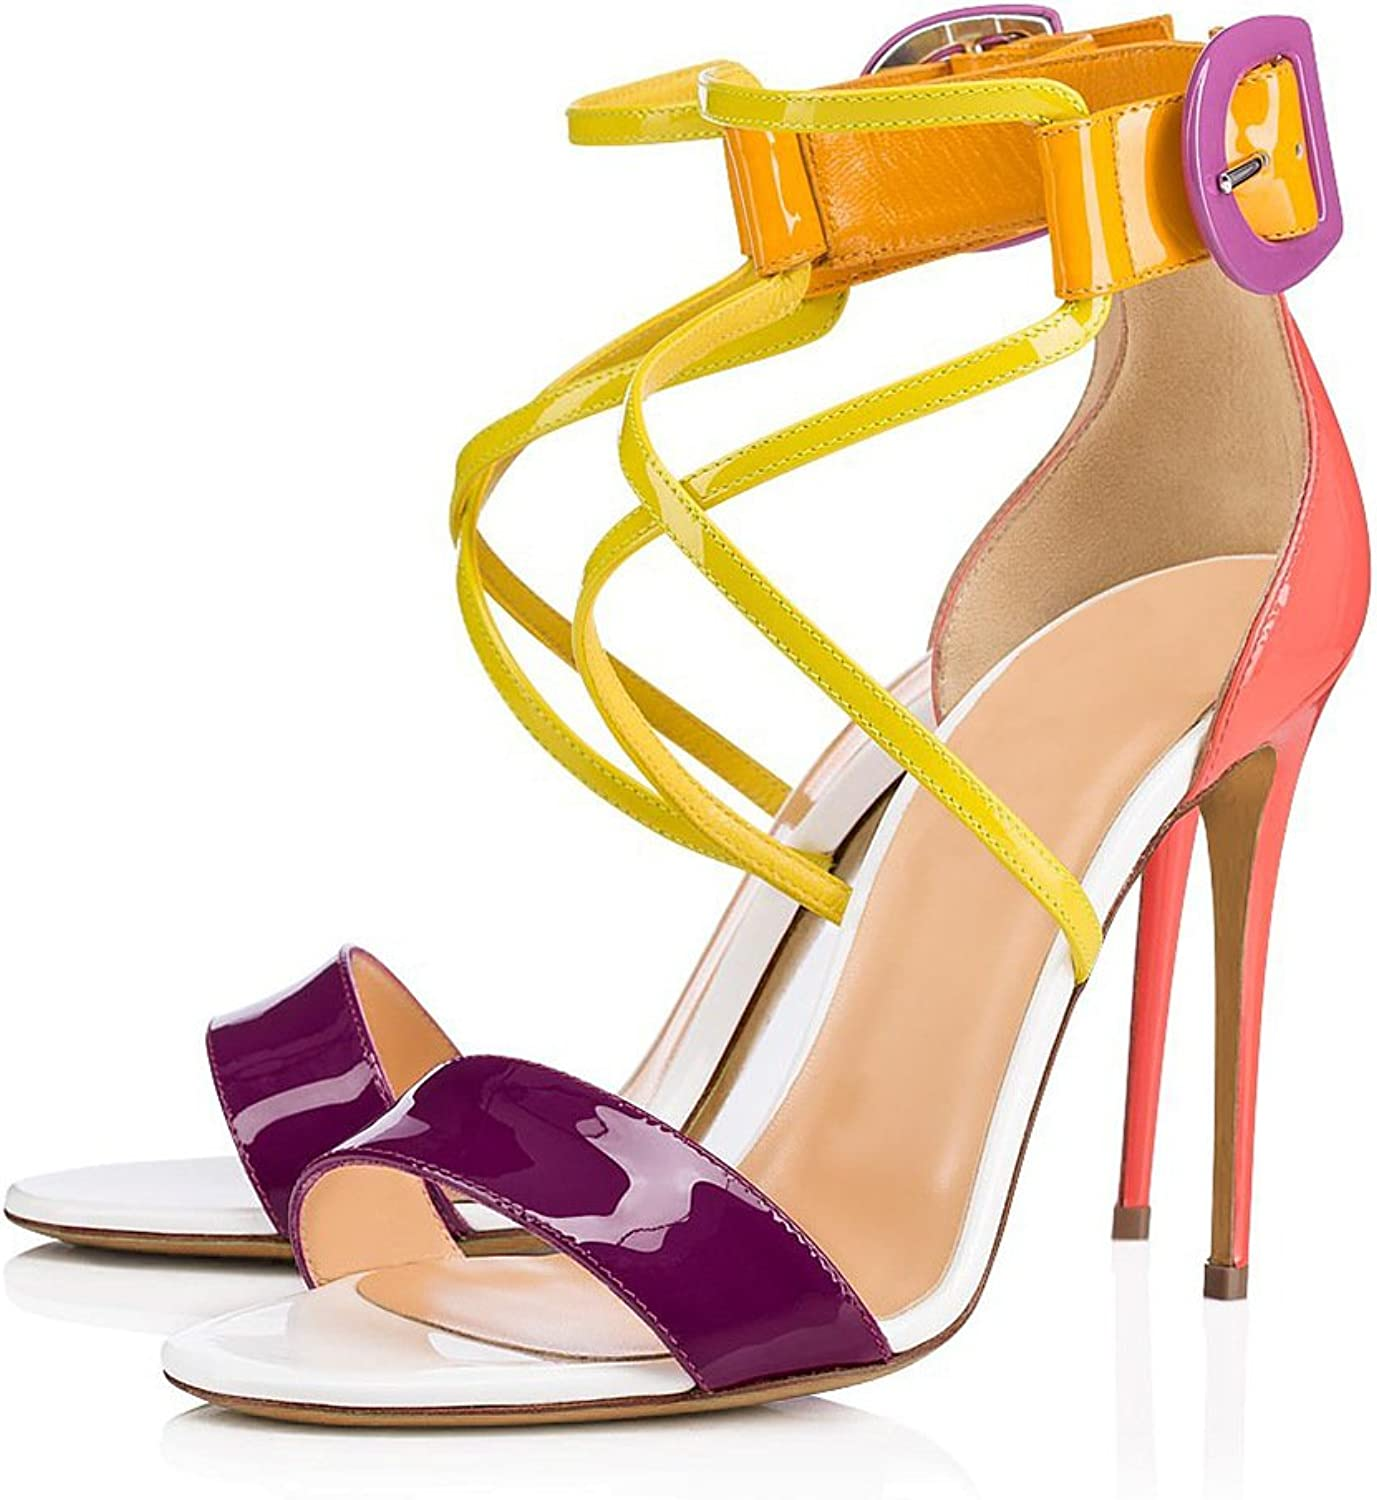 Women's shoes PU Summer Cross-Strap Shiny Sandals Stiletto Heel Pointed Toe Platform for Dress Party & Evening Candy color